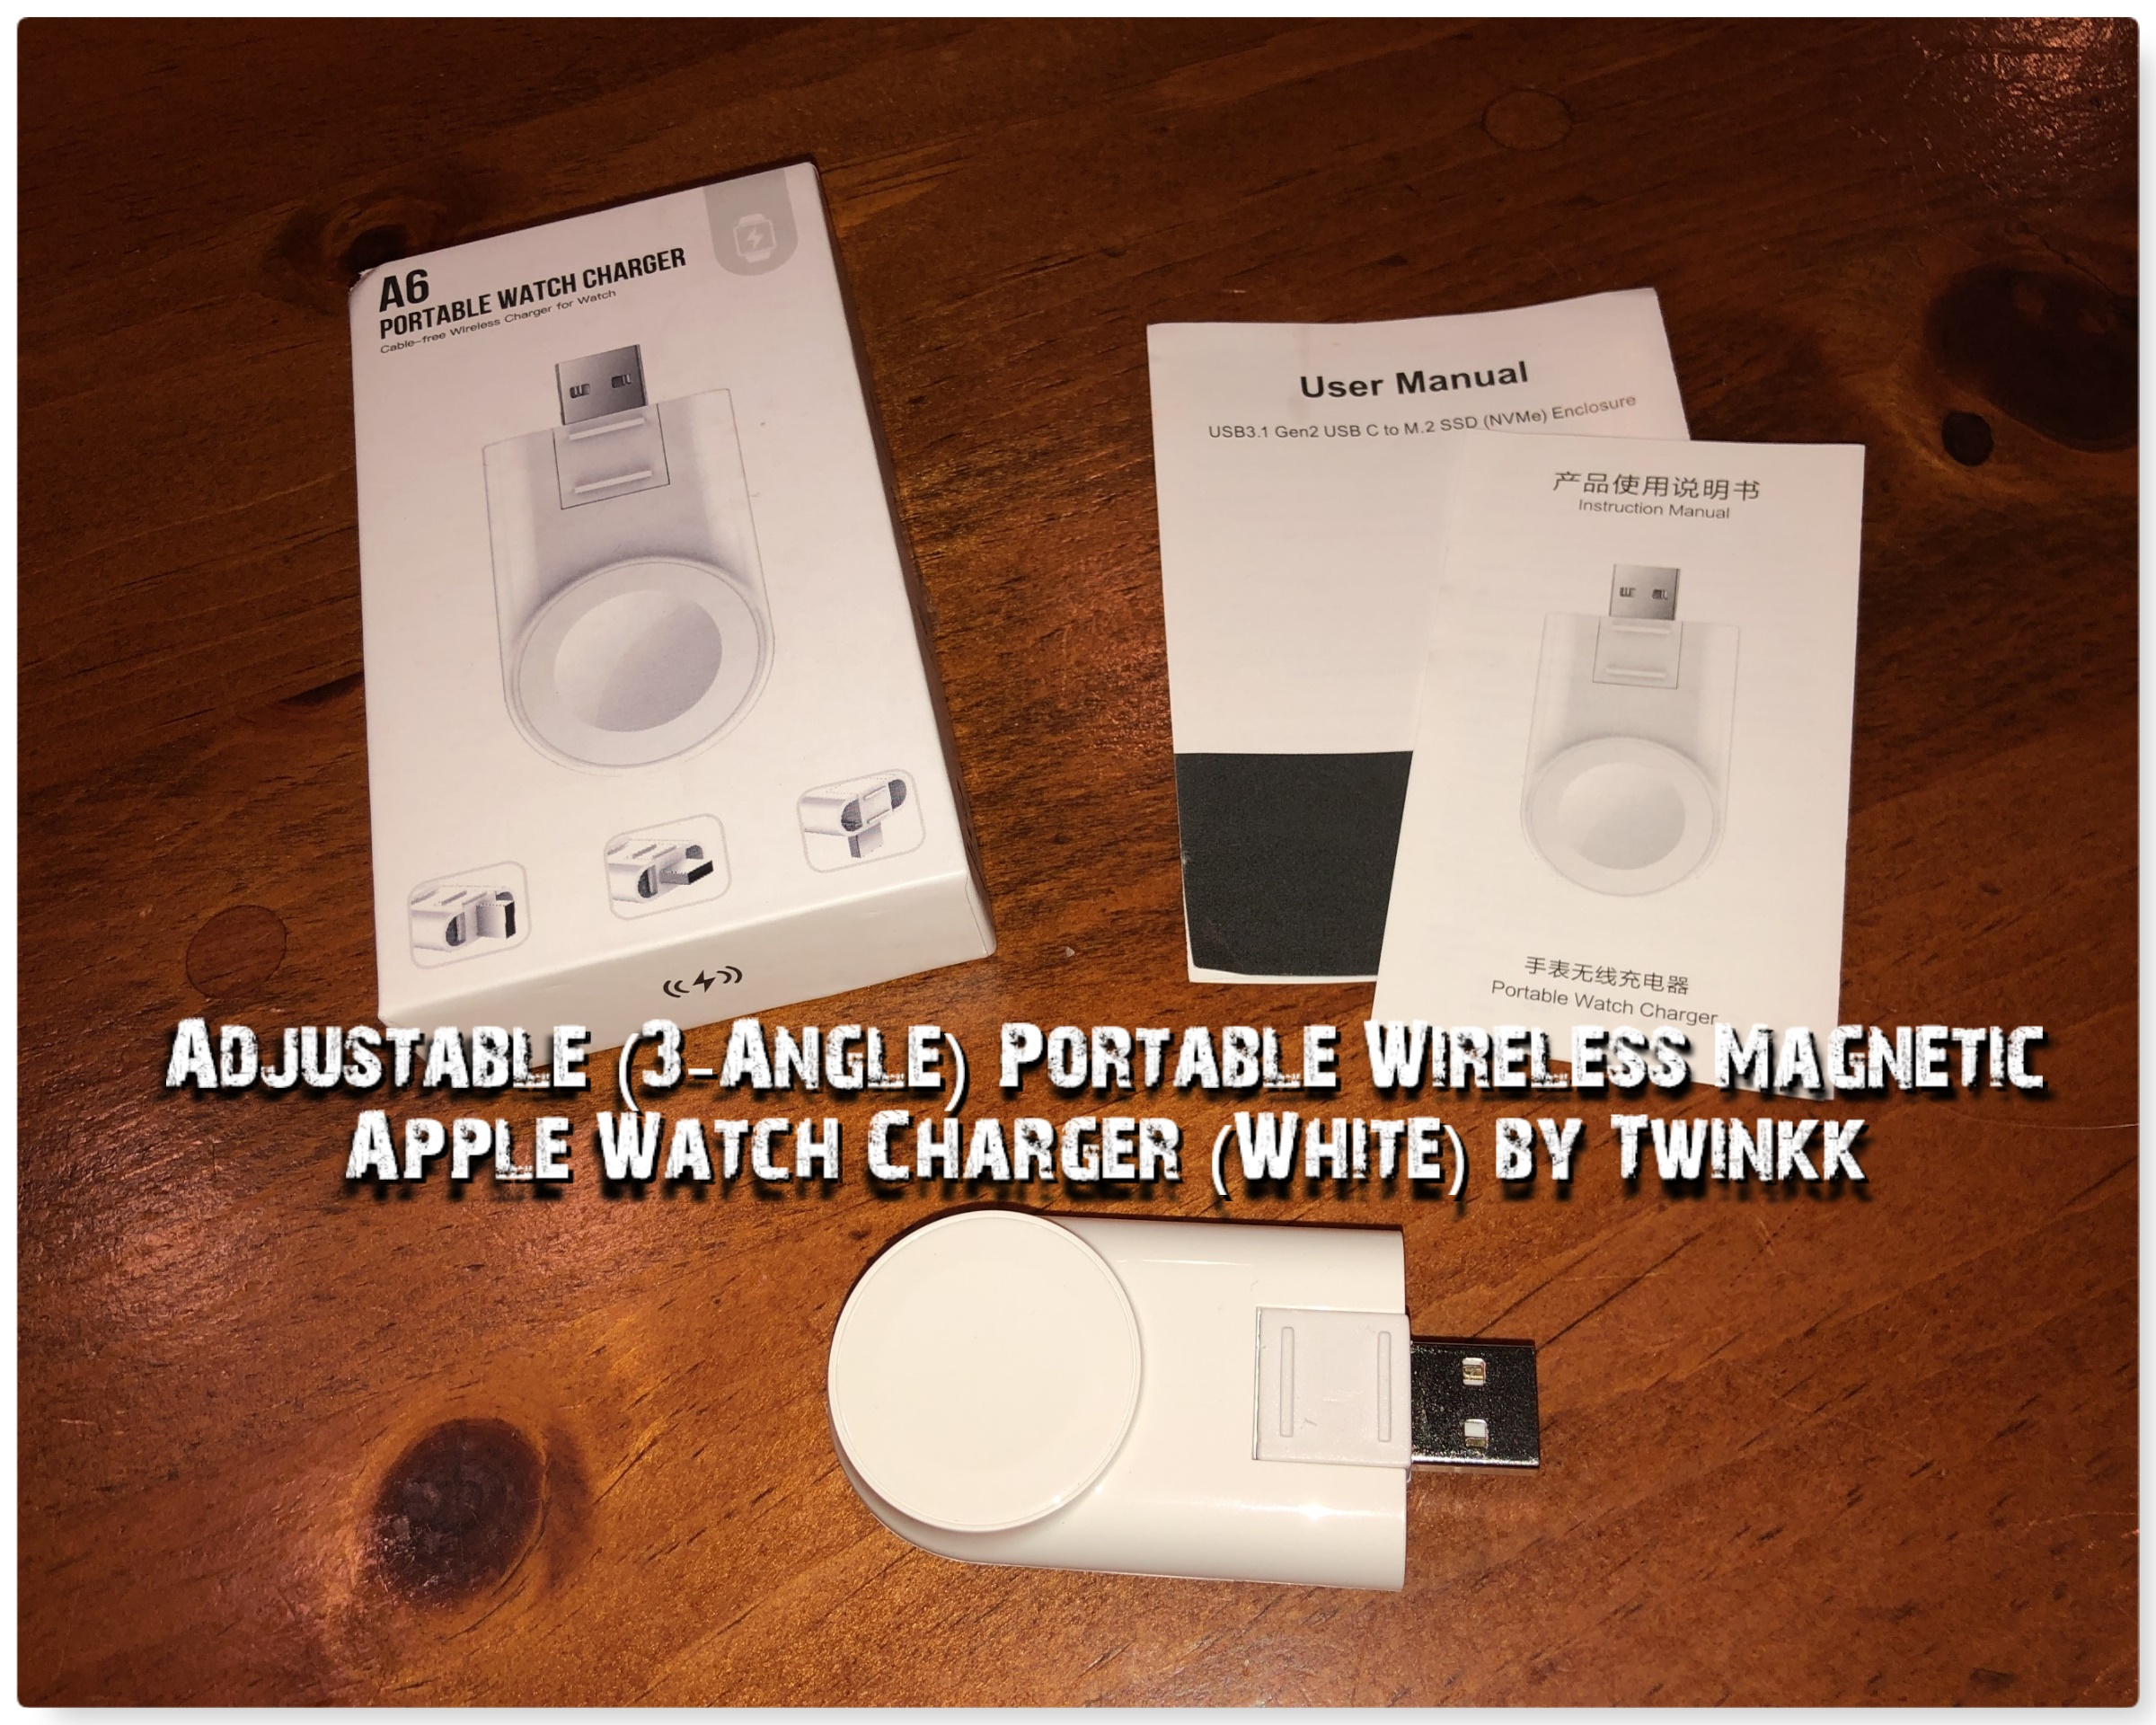 Extreme portability, convenience, and flexibility.